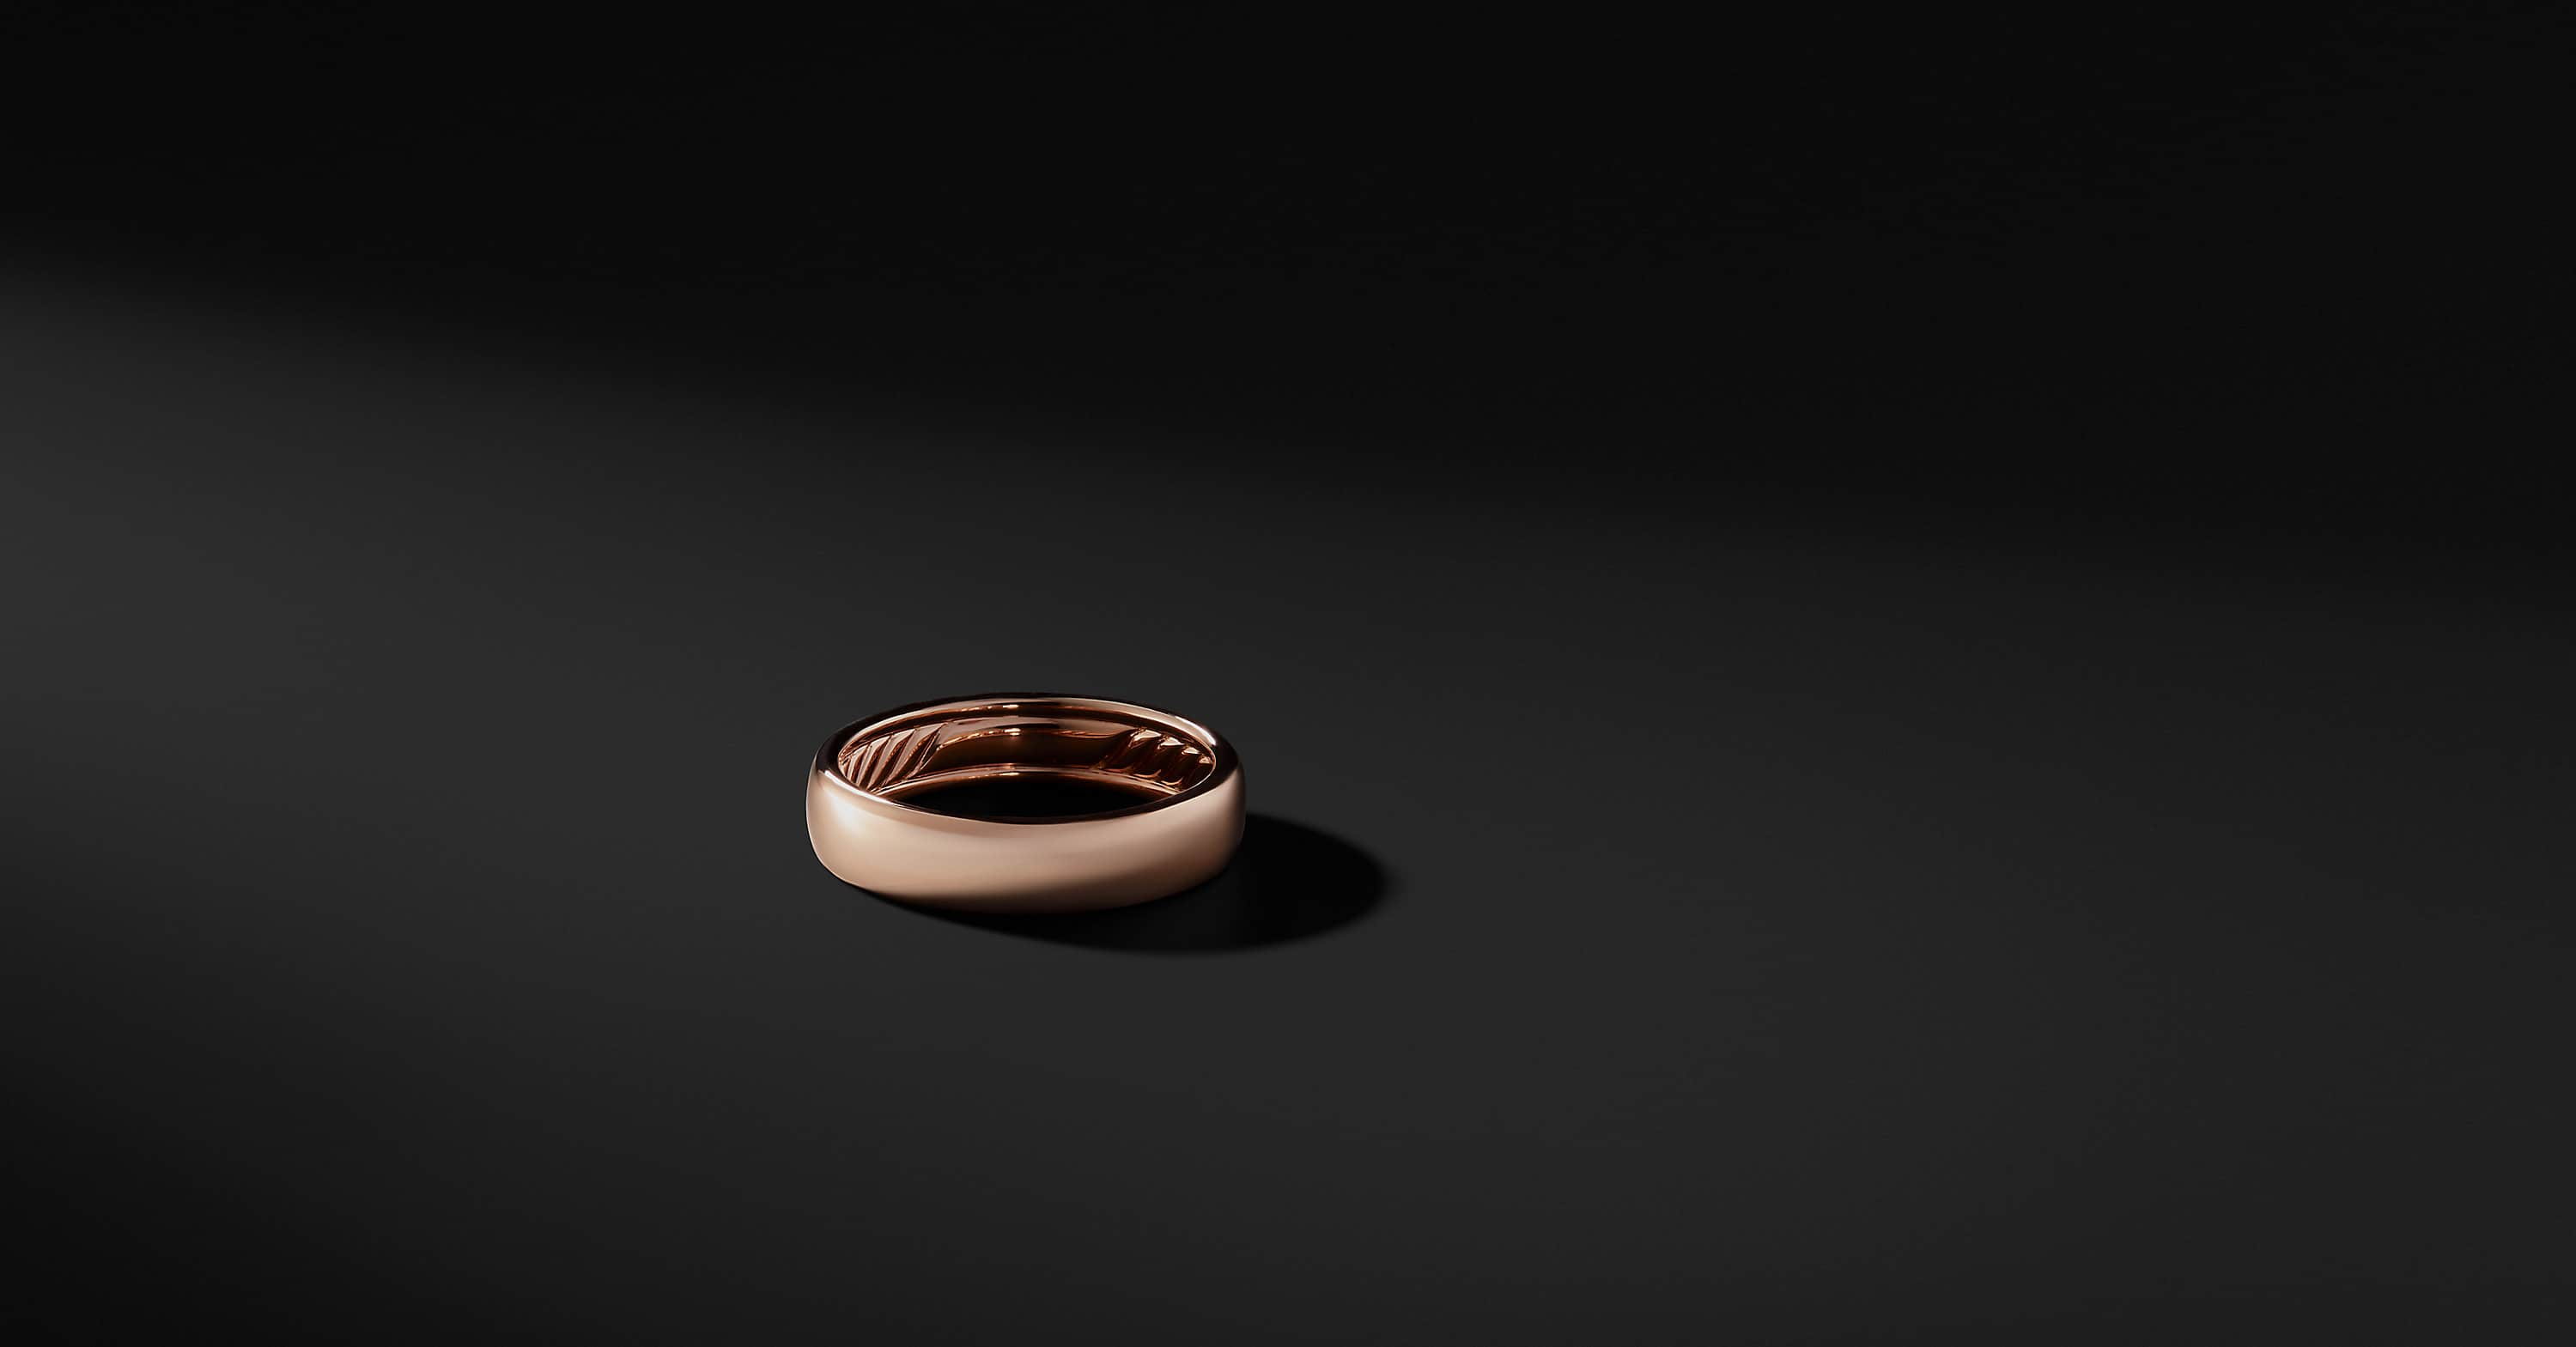 DY Classic Band in 18K Rose Gold, 6mm